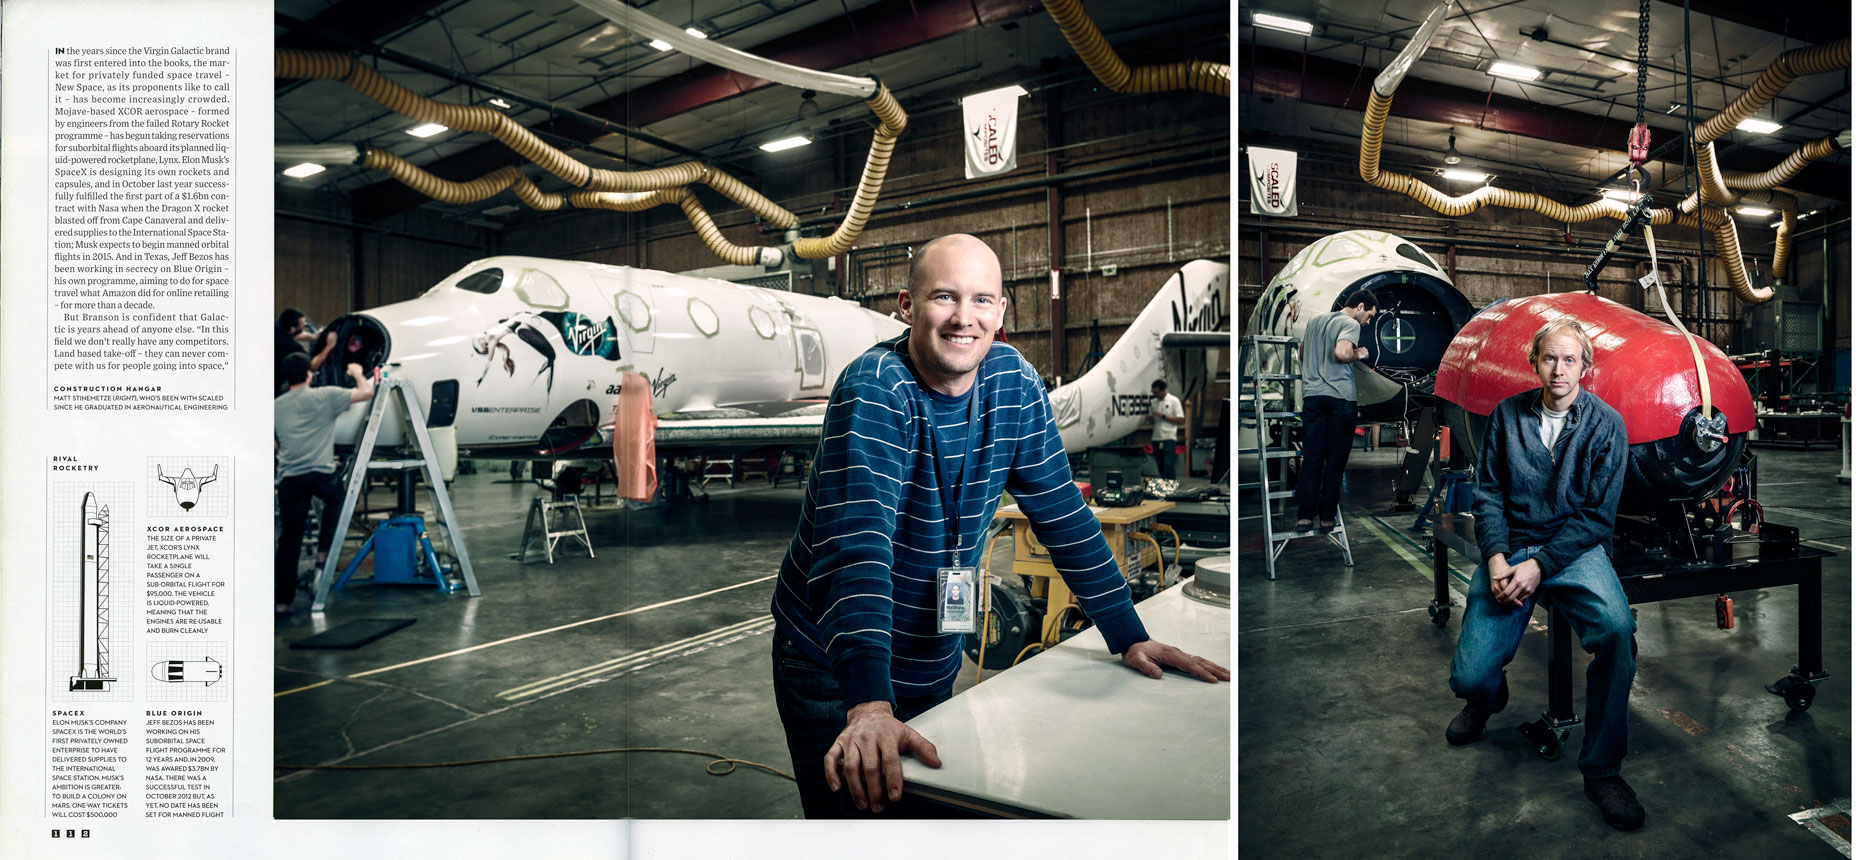 WIRED UK: BRANSON GOES GALACTIC: Matt Stinemetze and Jim Tighe. March 2013 issue - SPREAD 11 and 12